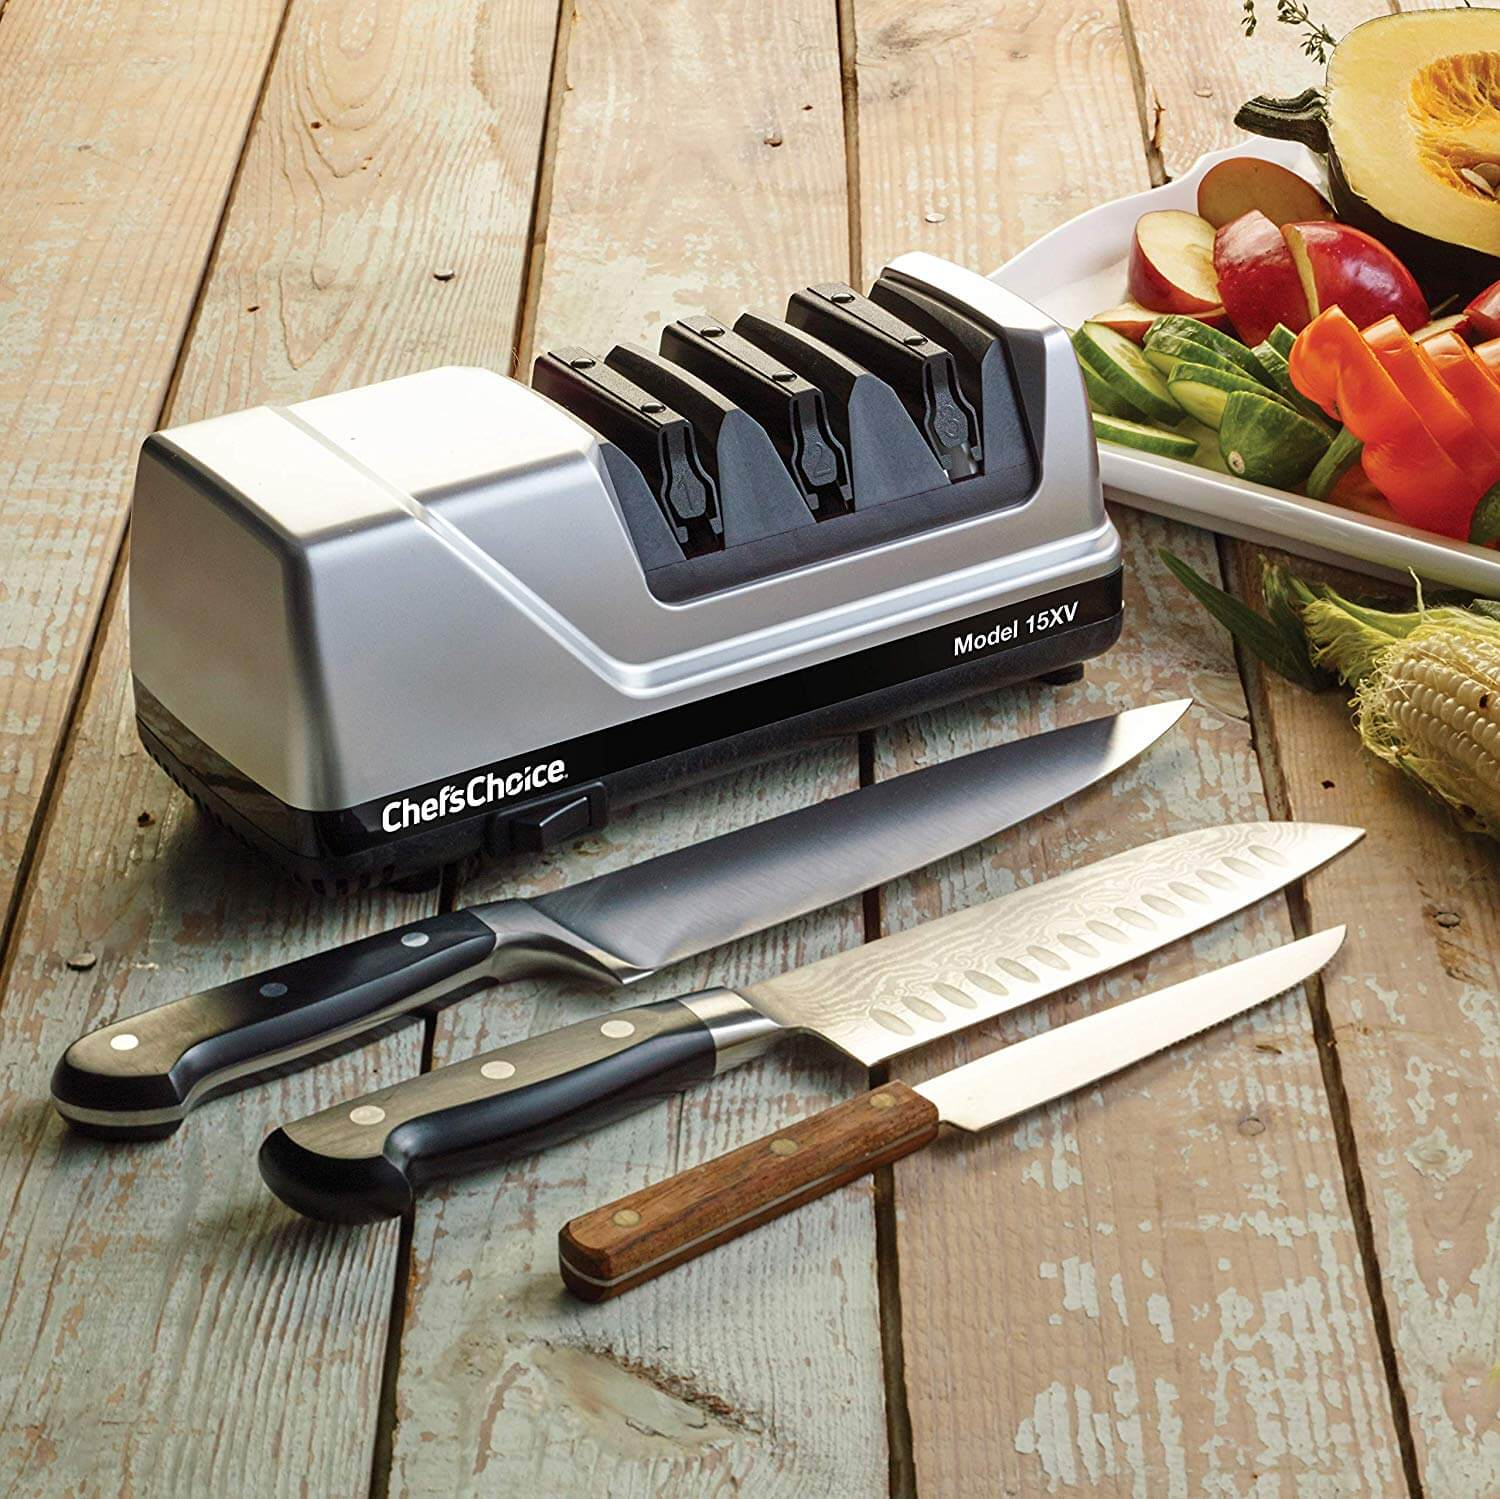 Top 10 Best Electric Knife Sharpeners Review-7